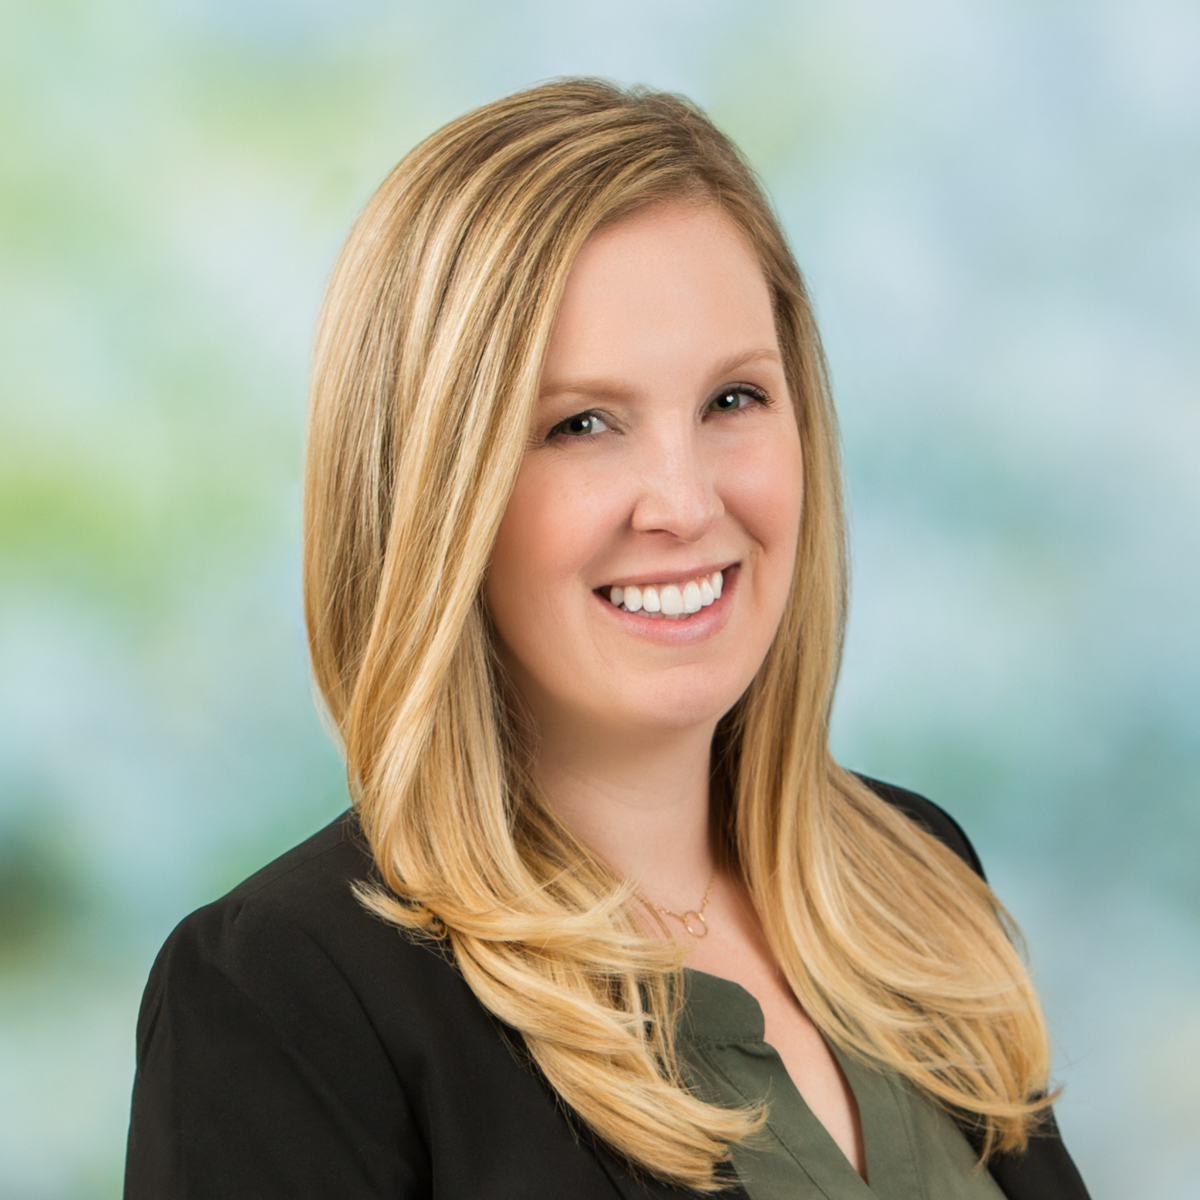 Shawna Sharkey, CPA